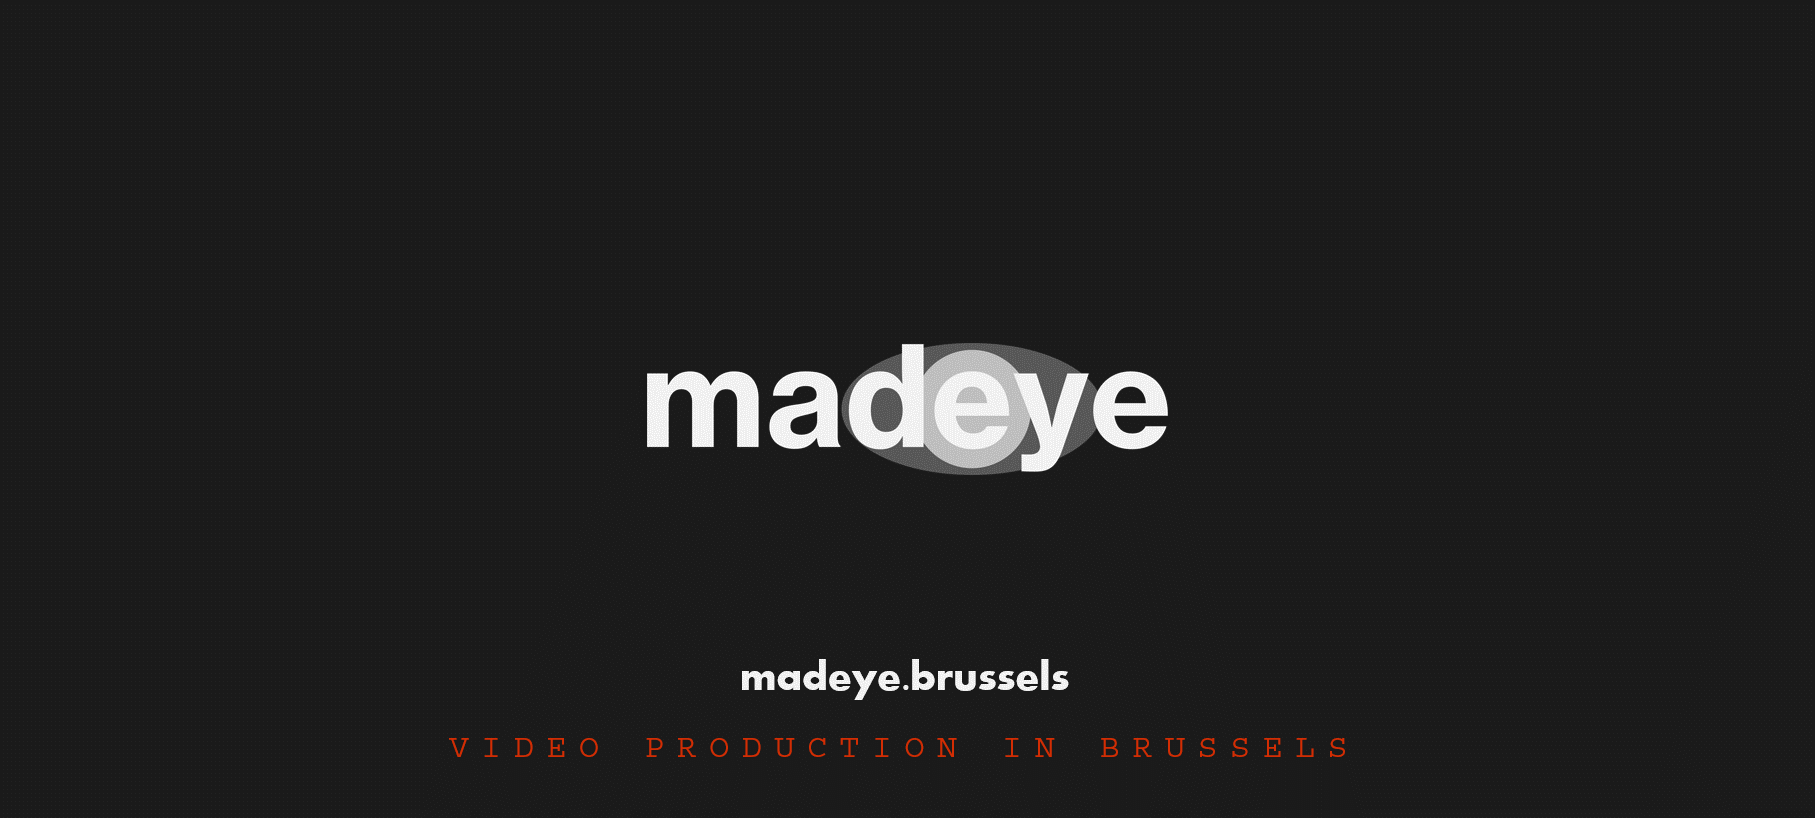 madeye.brussels - Video production in Brussels